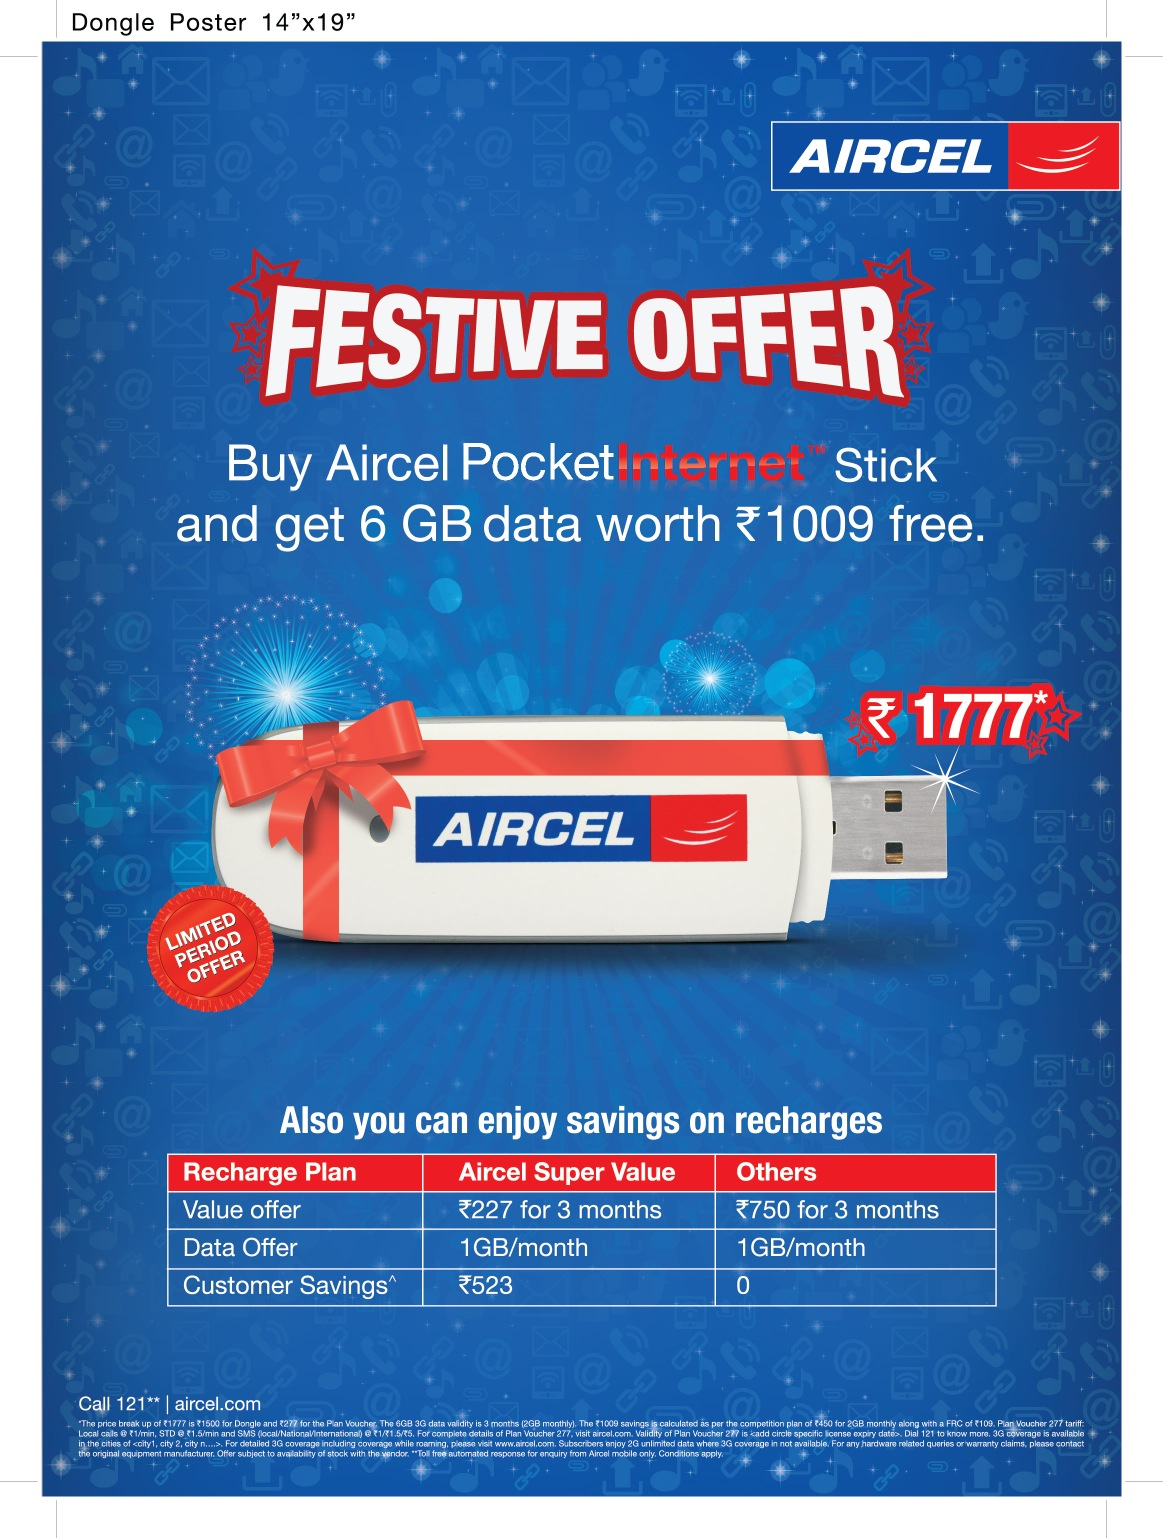 aircel introduces 3g dongle value pack - telecom clue™